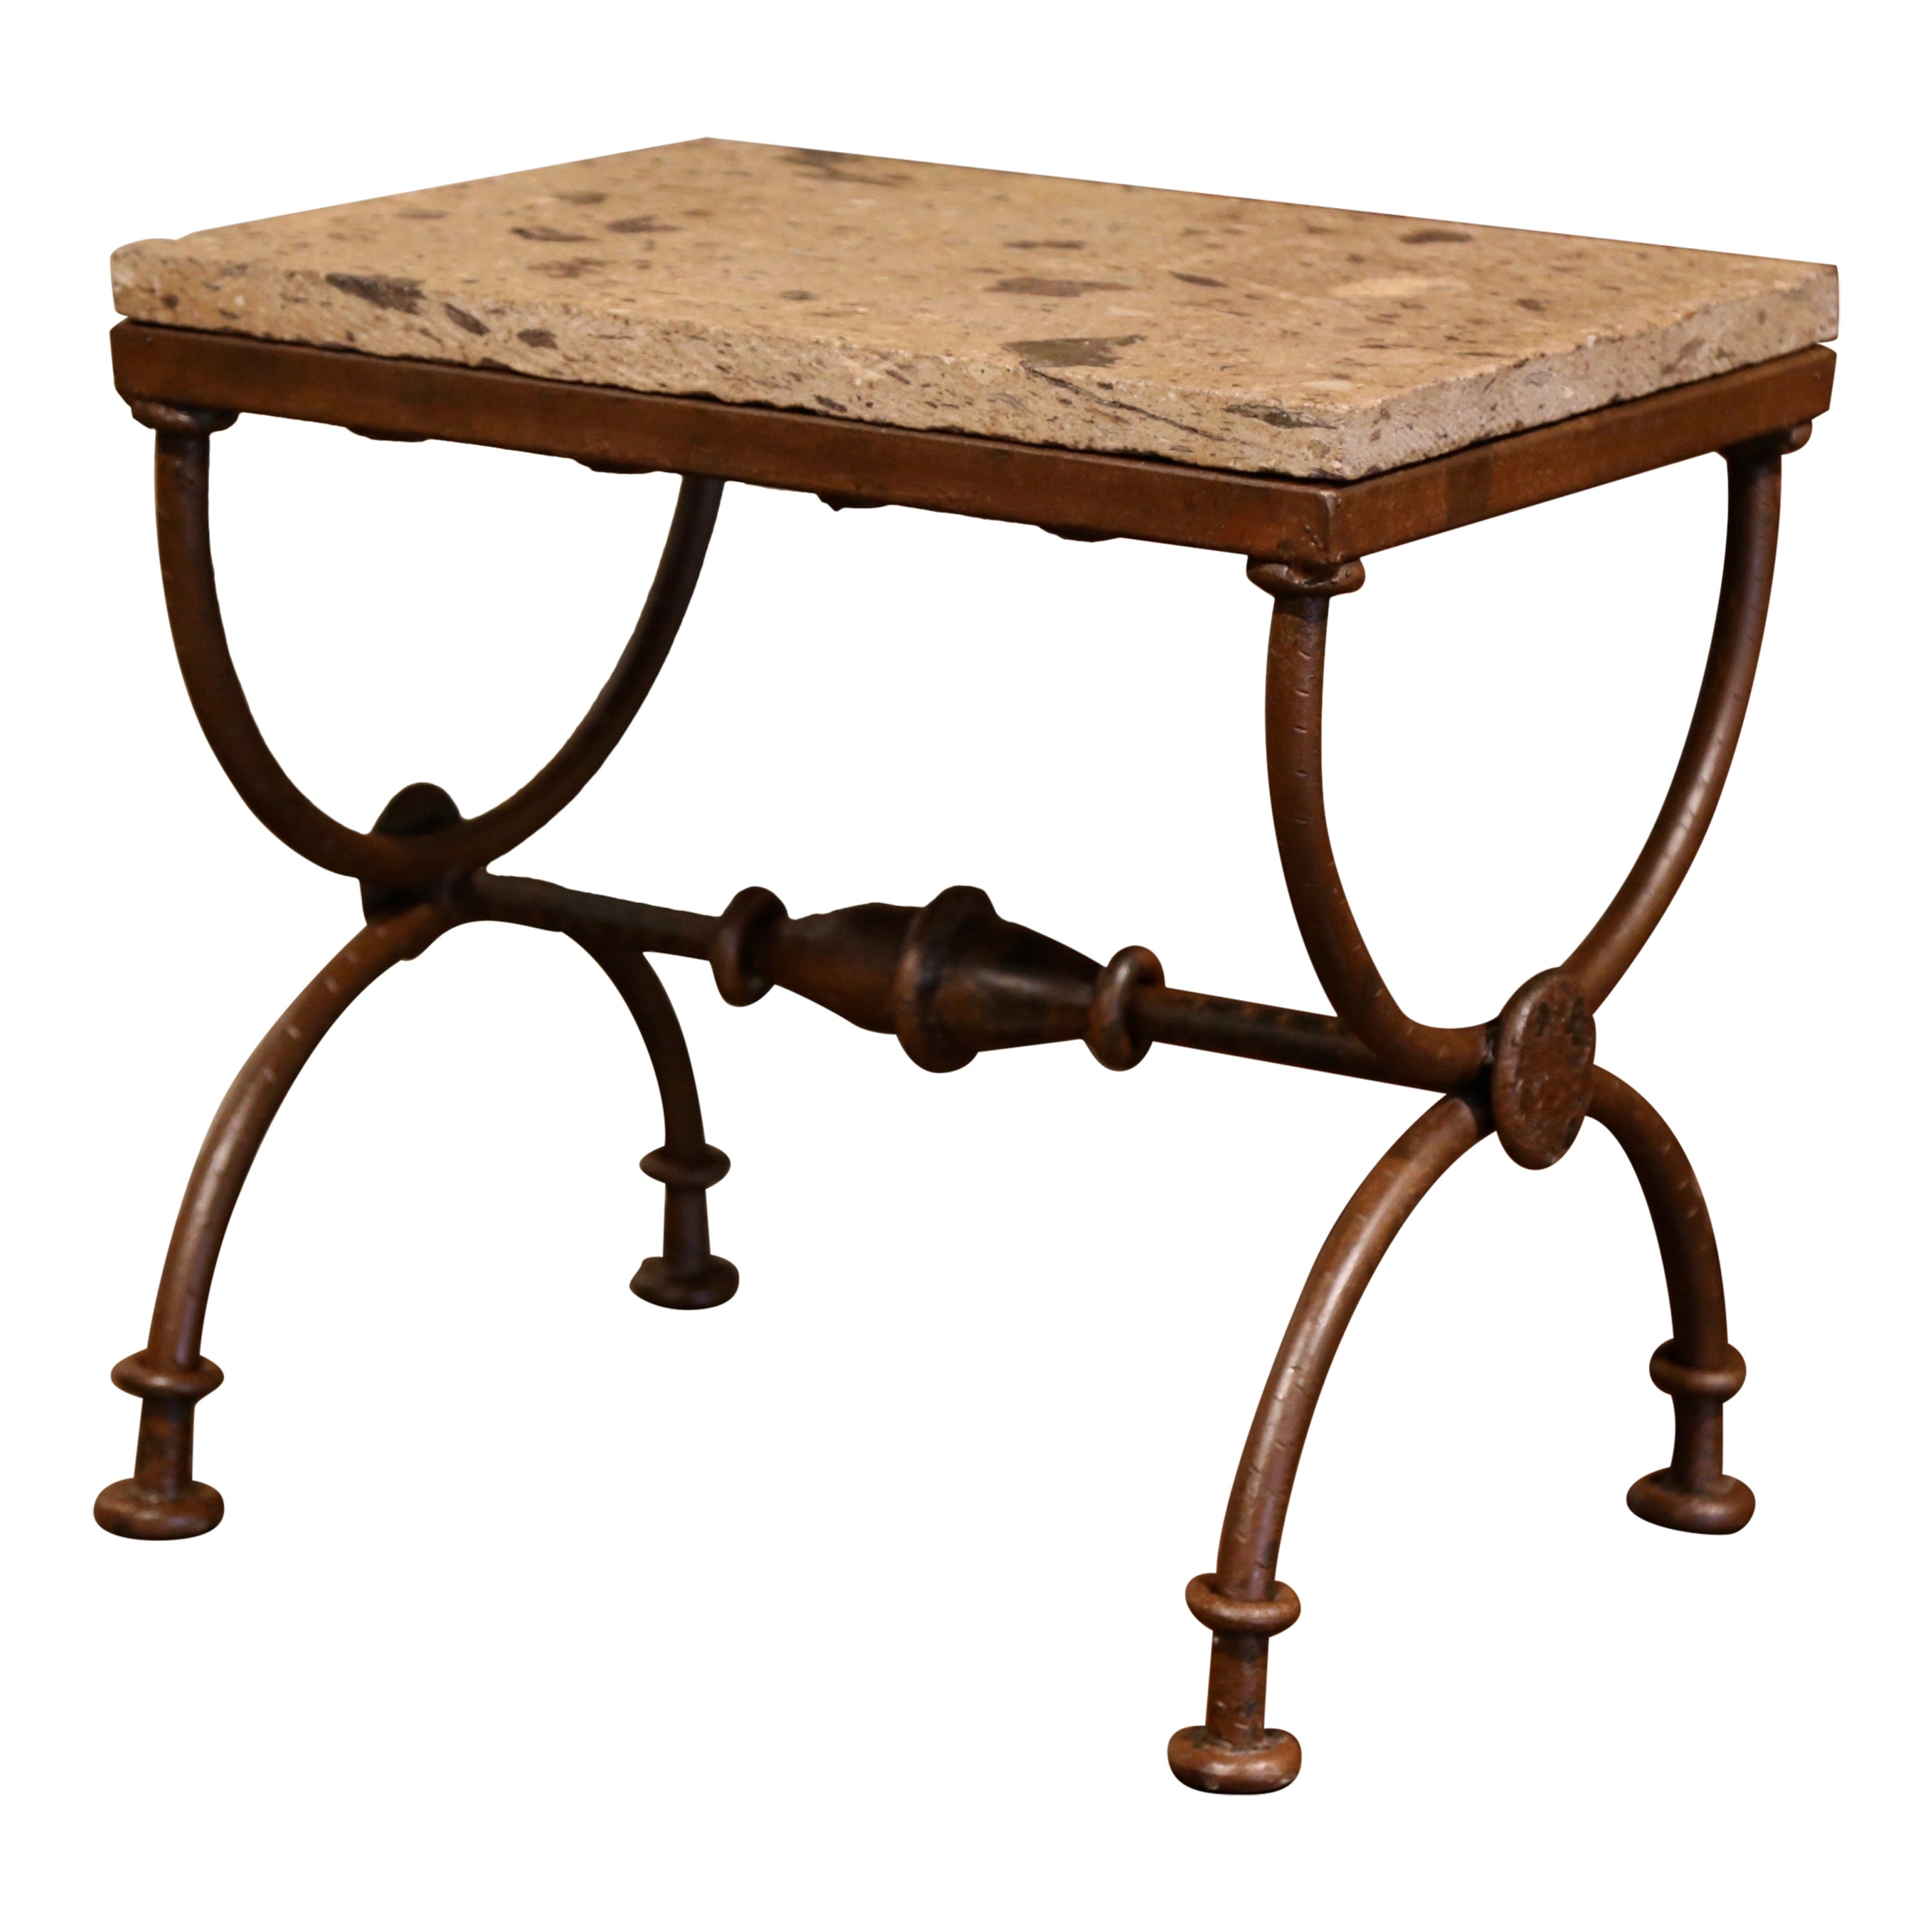 Vintage Charles X Dagobert Style Iron Occasional Side Table with Stone Top